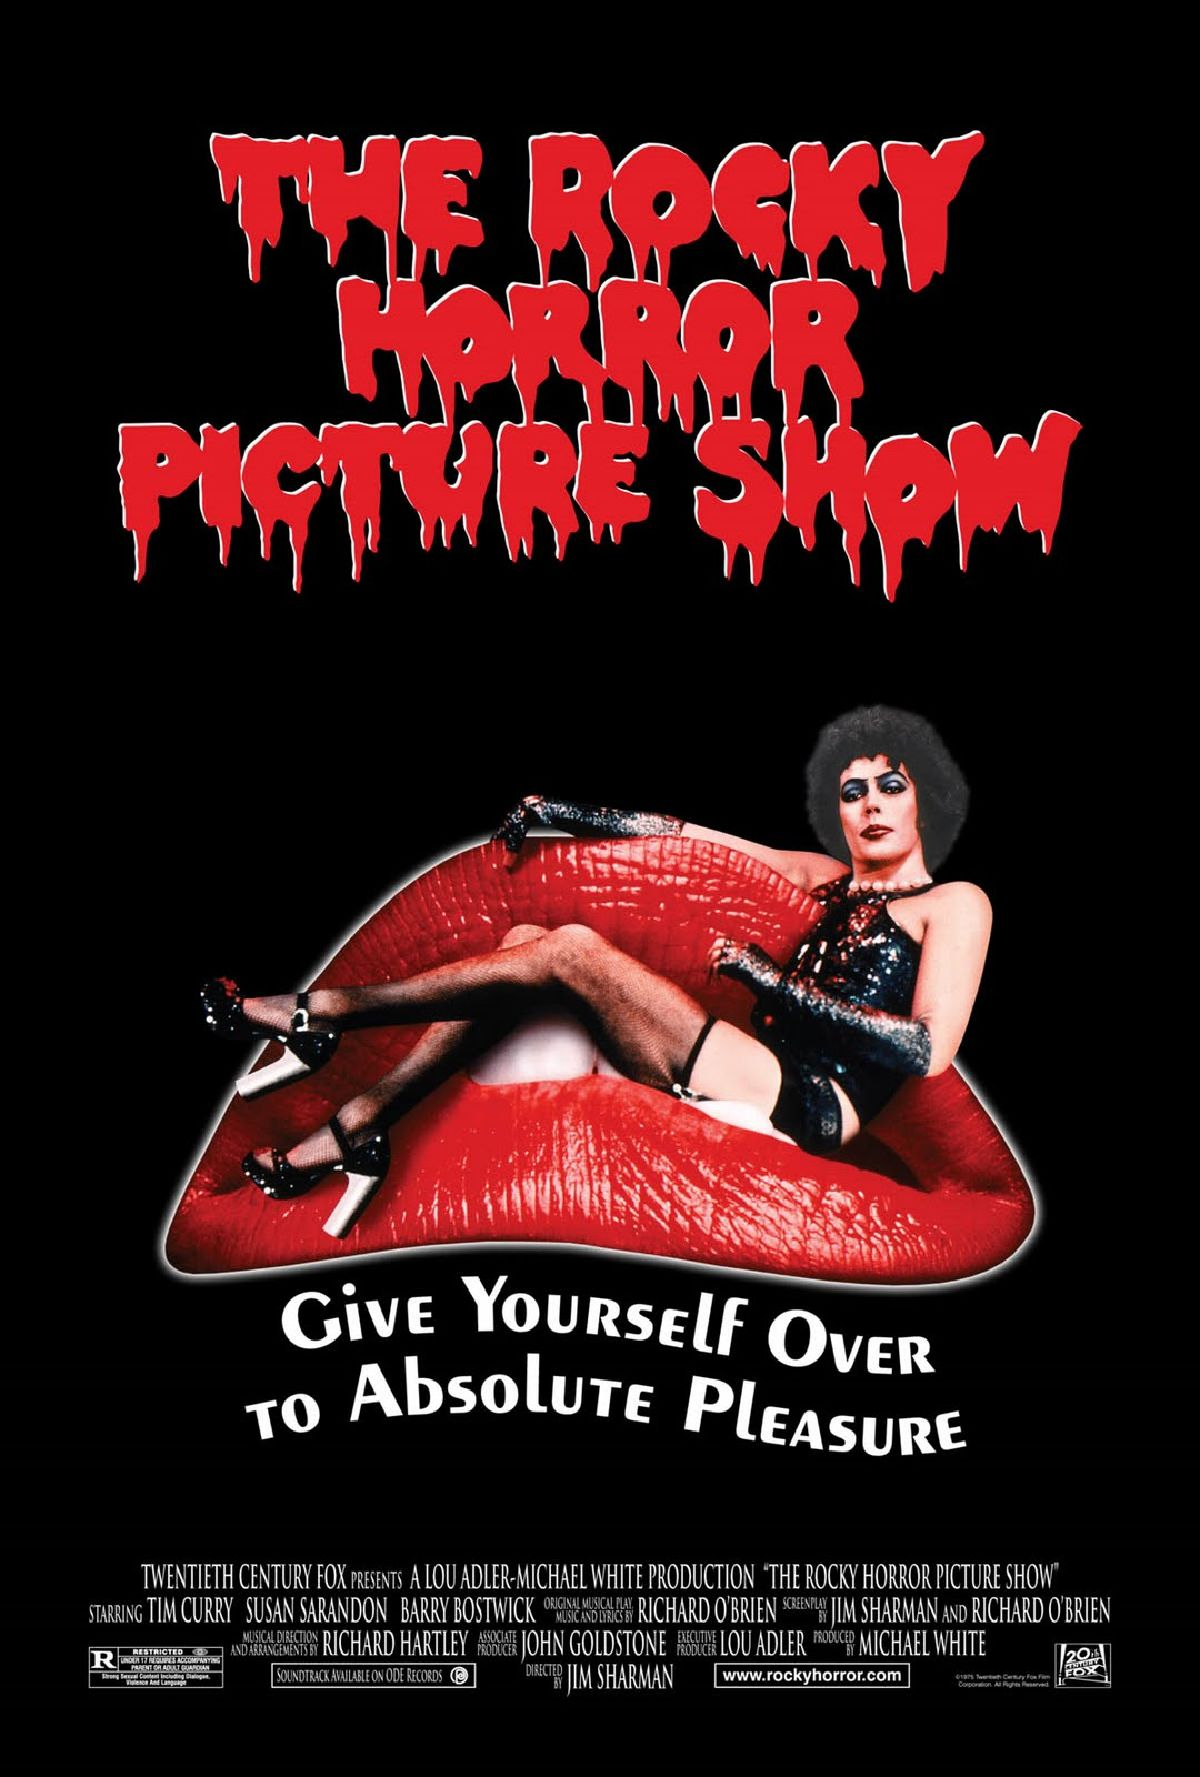 'The Rocky Horror Picture Show' movie poster